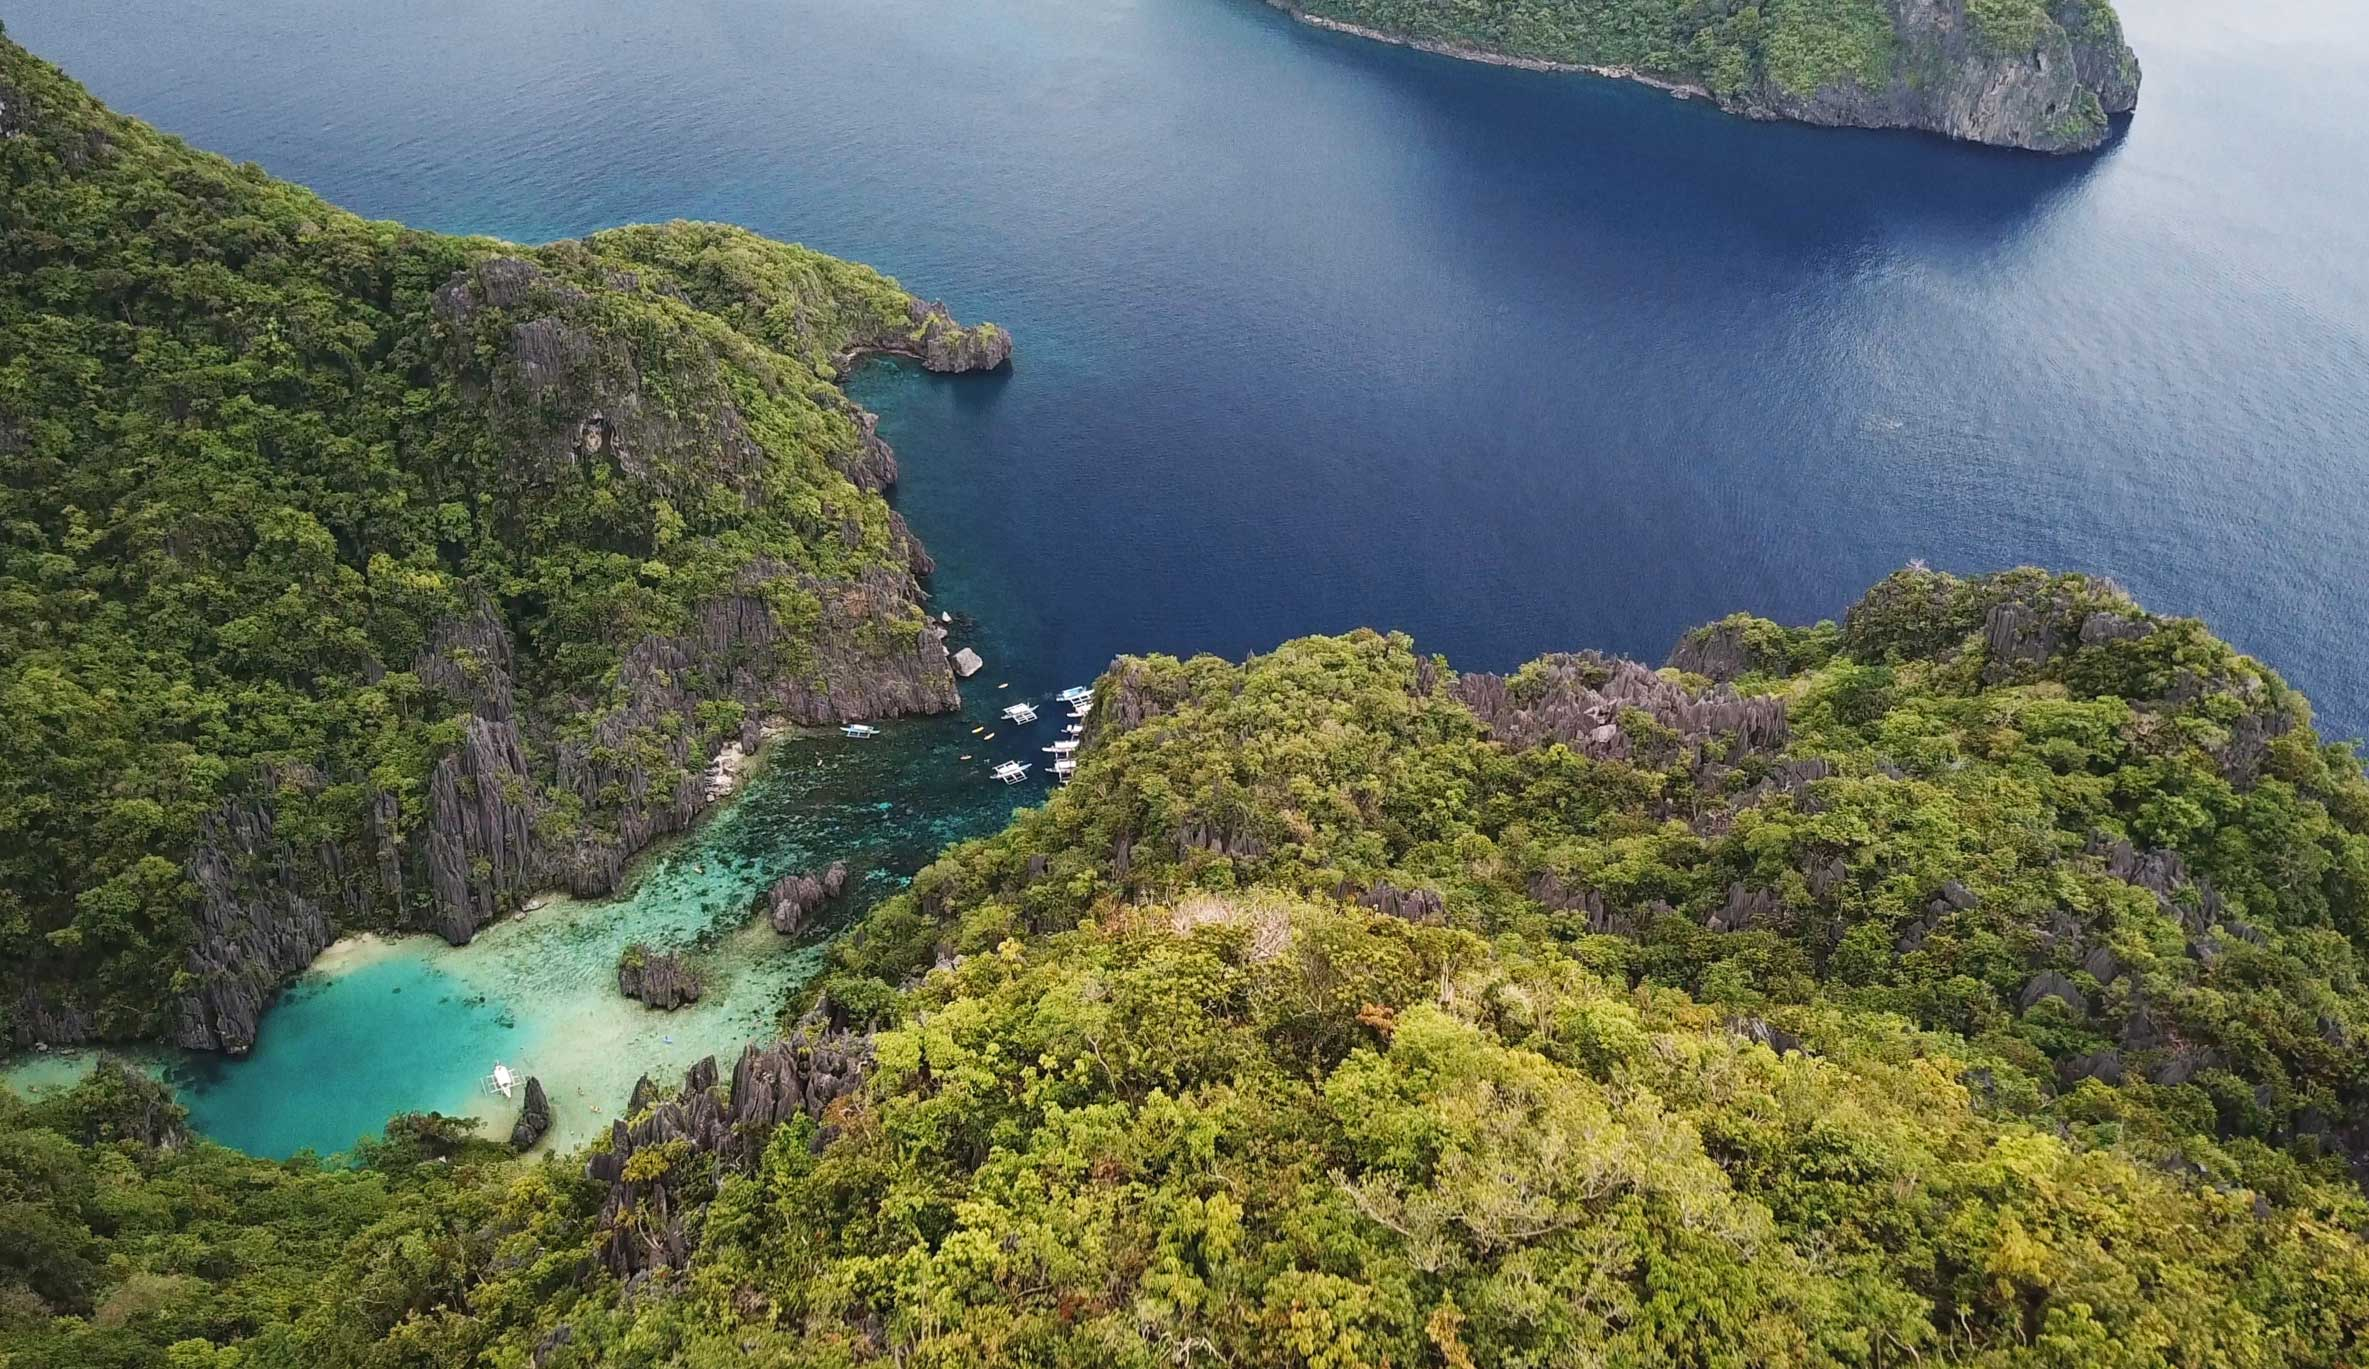 Cadlao Lagoon: the best snorkeling we've seen since the Maldives! 🐠 🐟 🦀 🐡 🐙